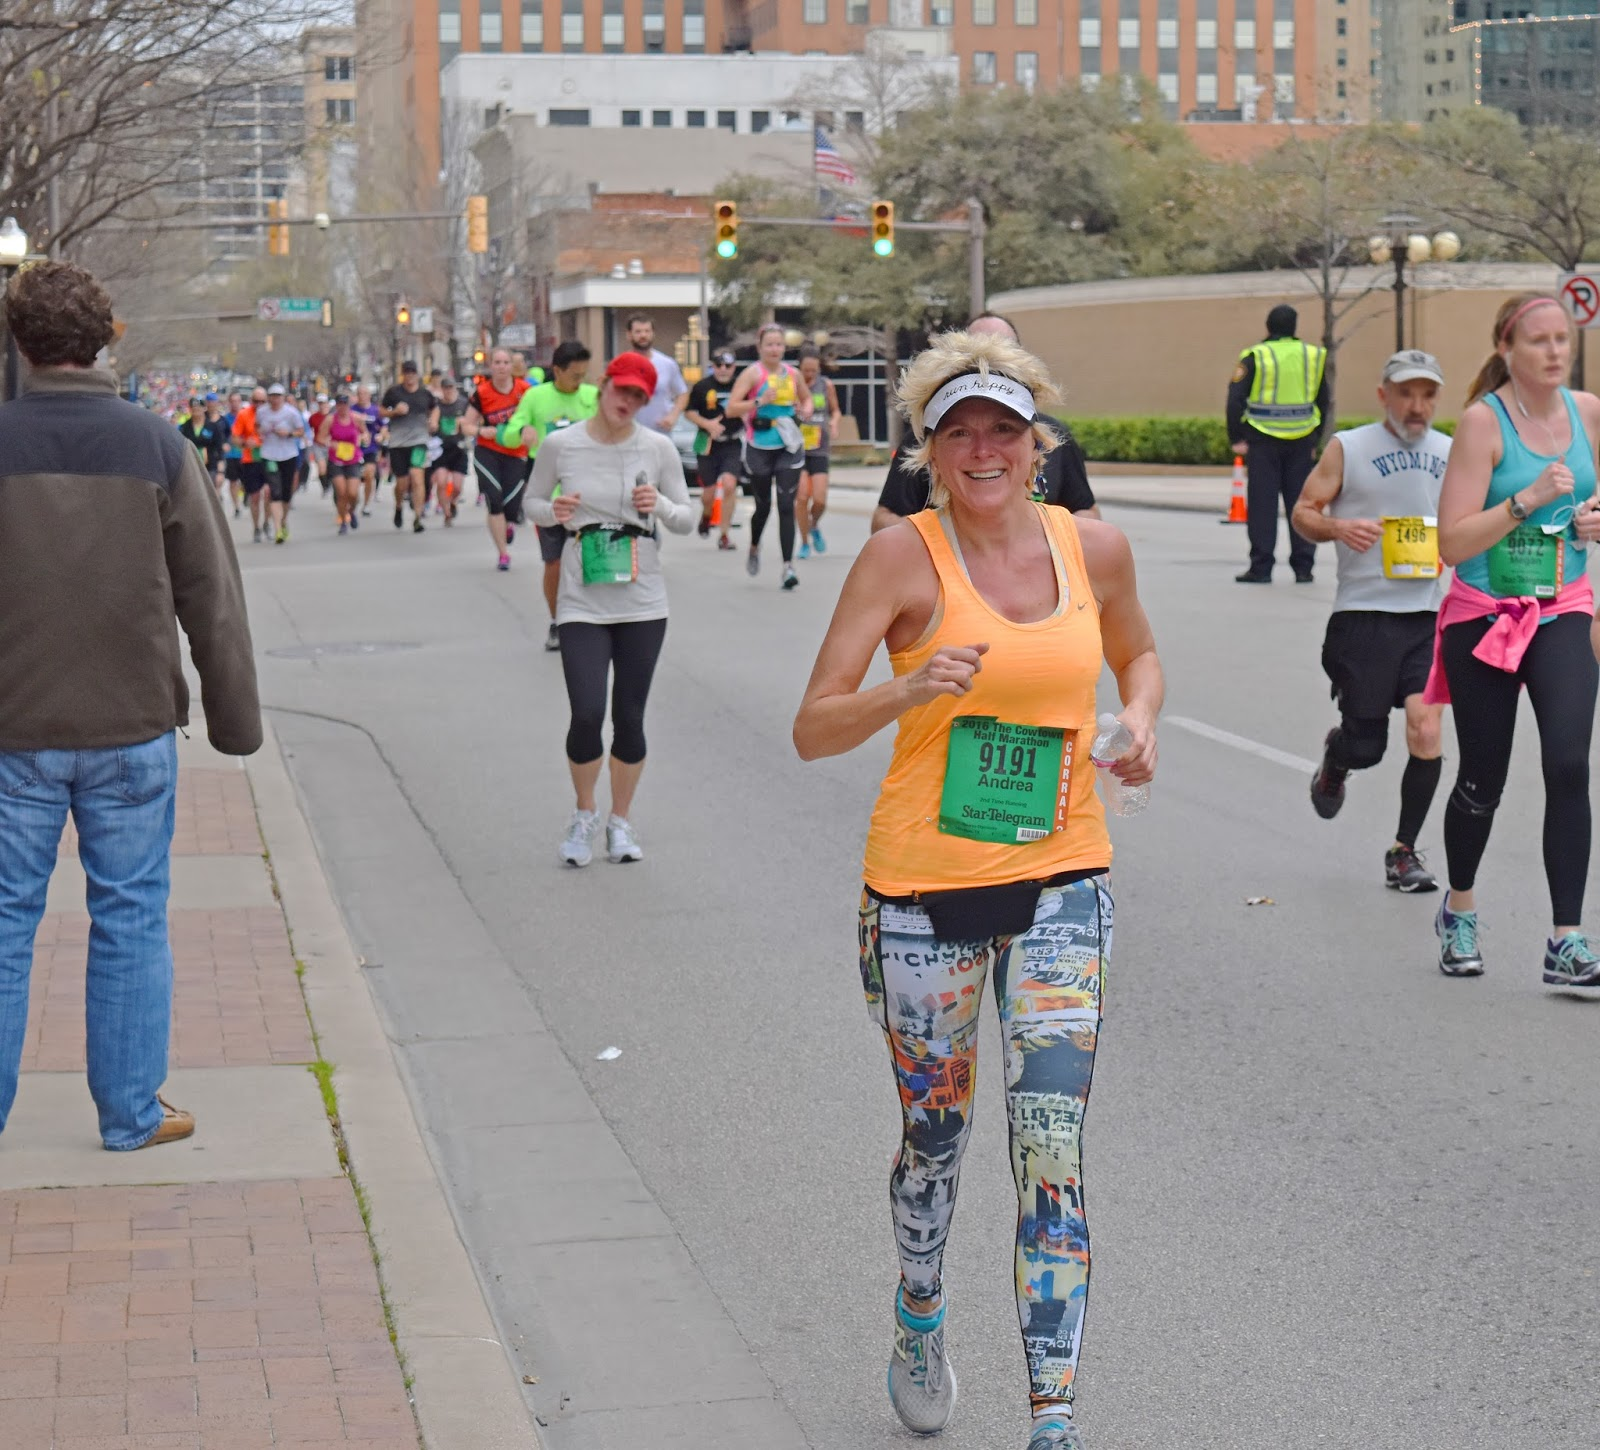 Cowtown Marathon in Fort Worth, Texas